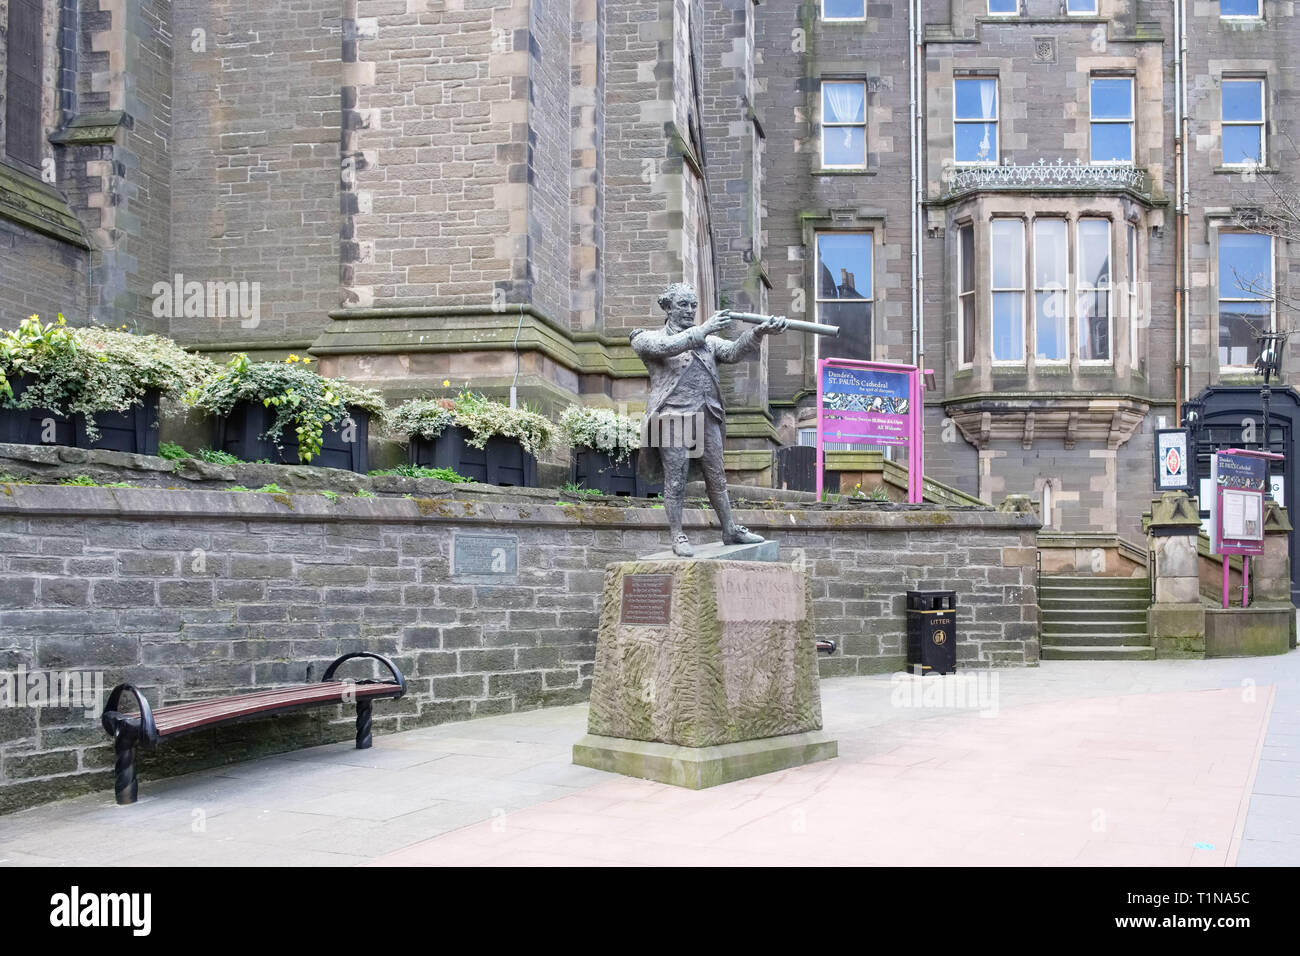 Dundee, Scotland, UK - March 23, 2019: The statue of Adam Duncan and famous Dundee figure responsible for defeating the dutch in a famous sea battle.  - Stock Image